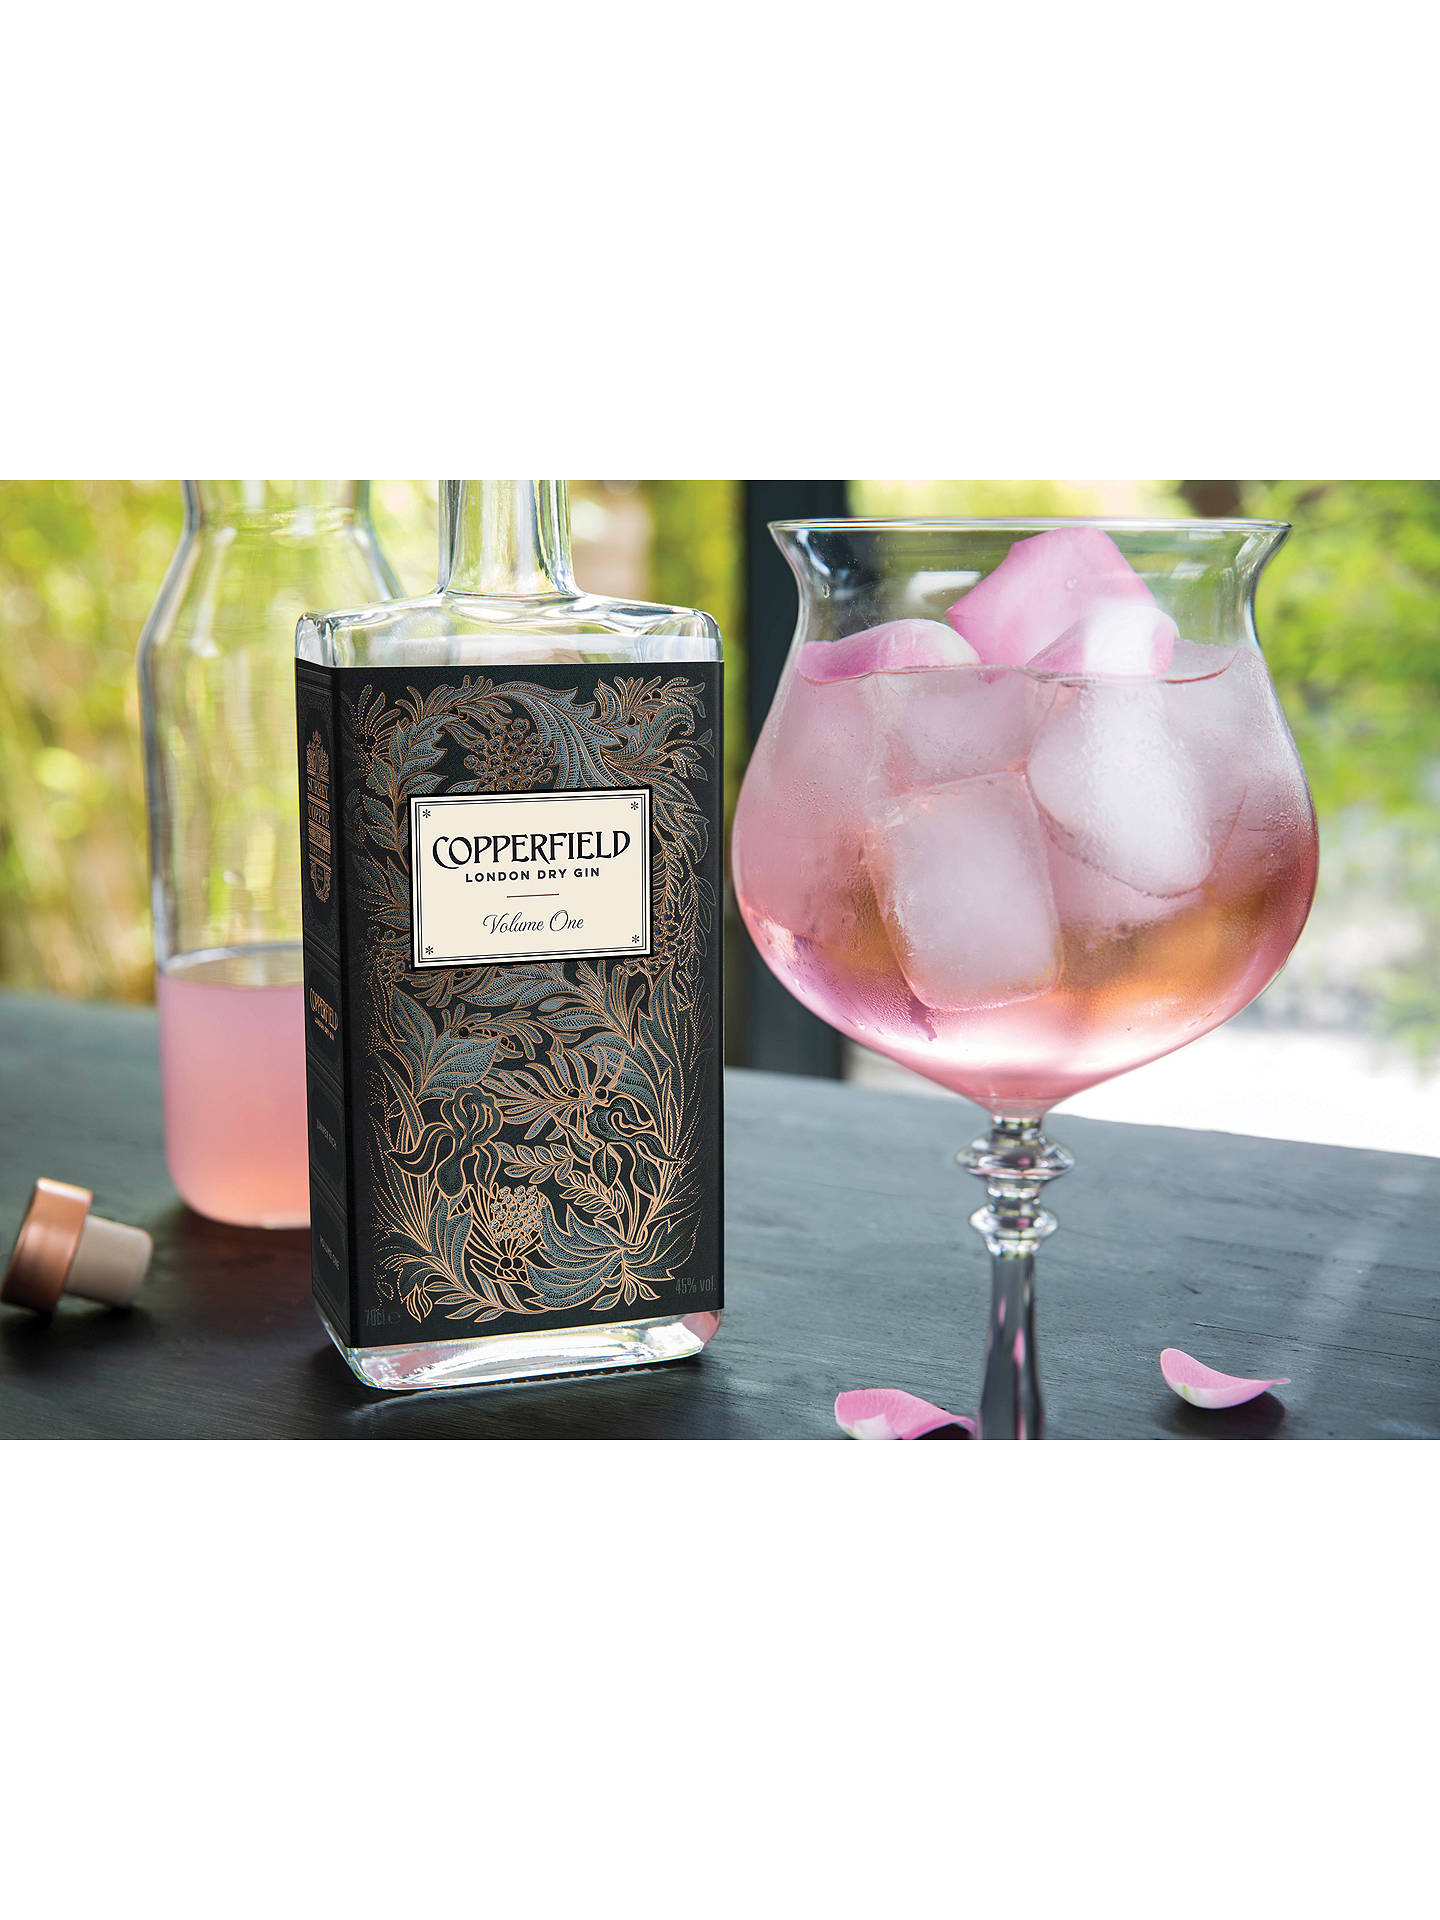 Buy The Surrey Copper Distillery Copperfield Dry Gin, 70cl Online at johnlewis.com